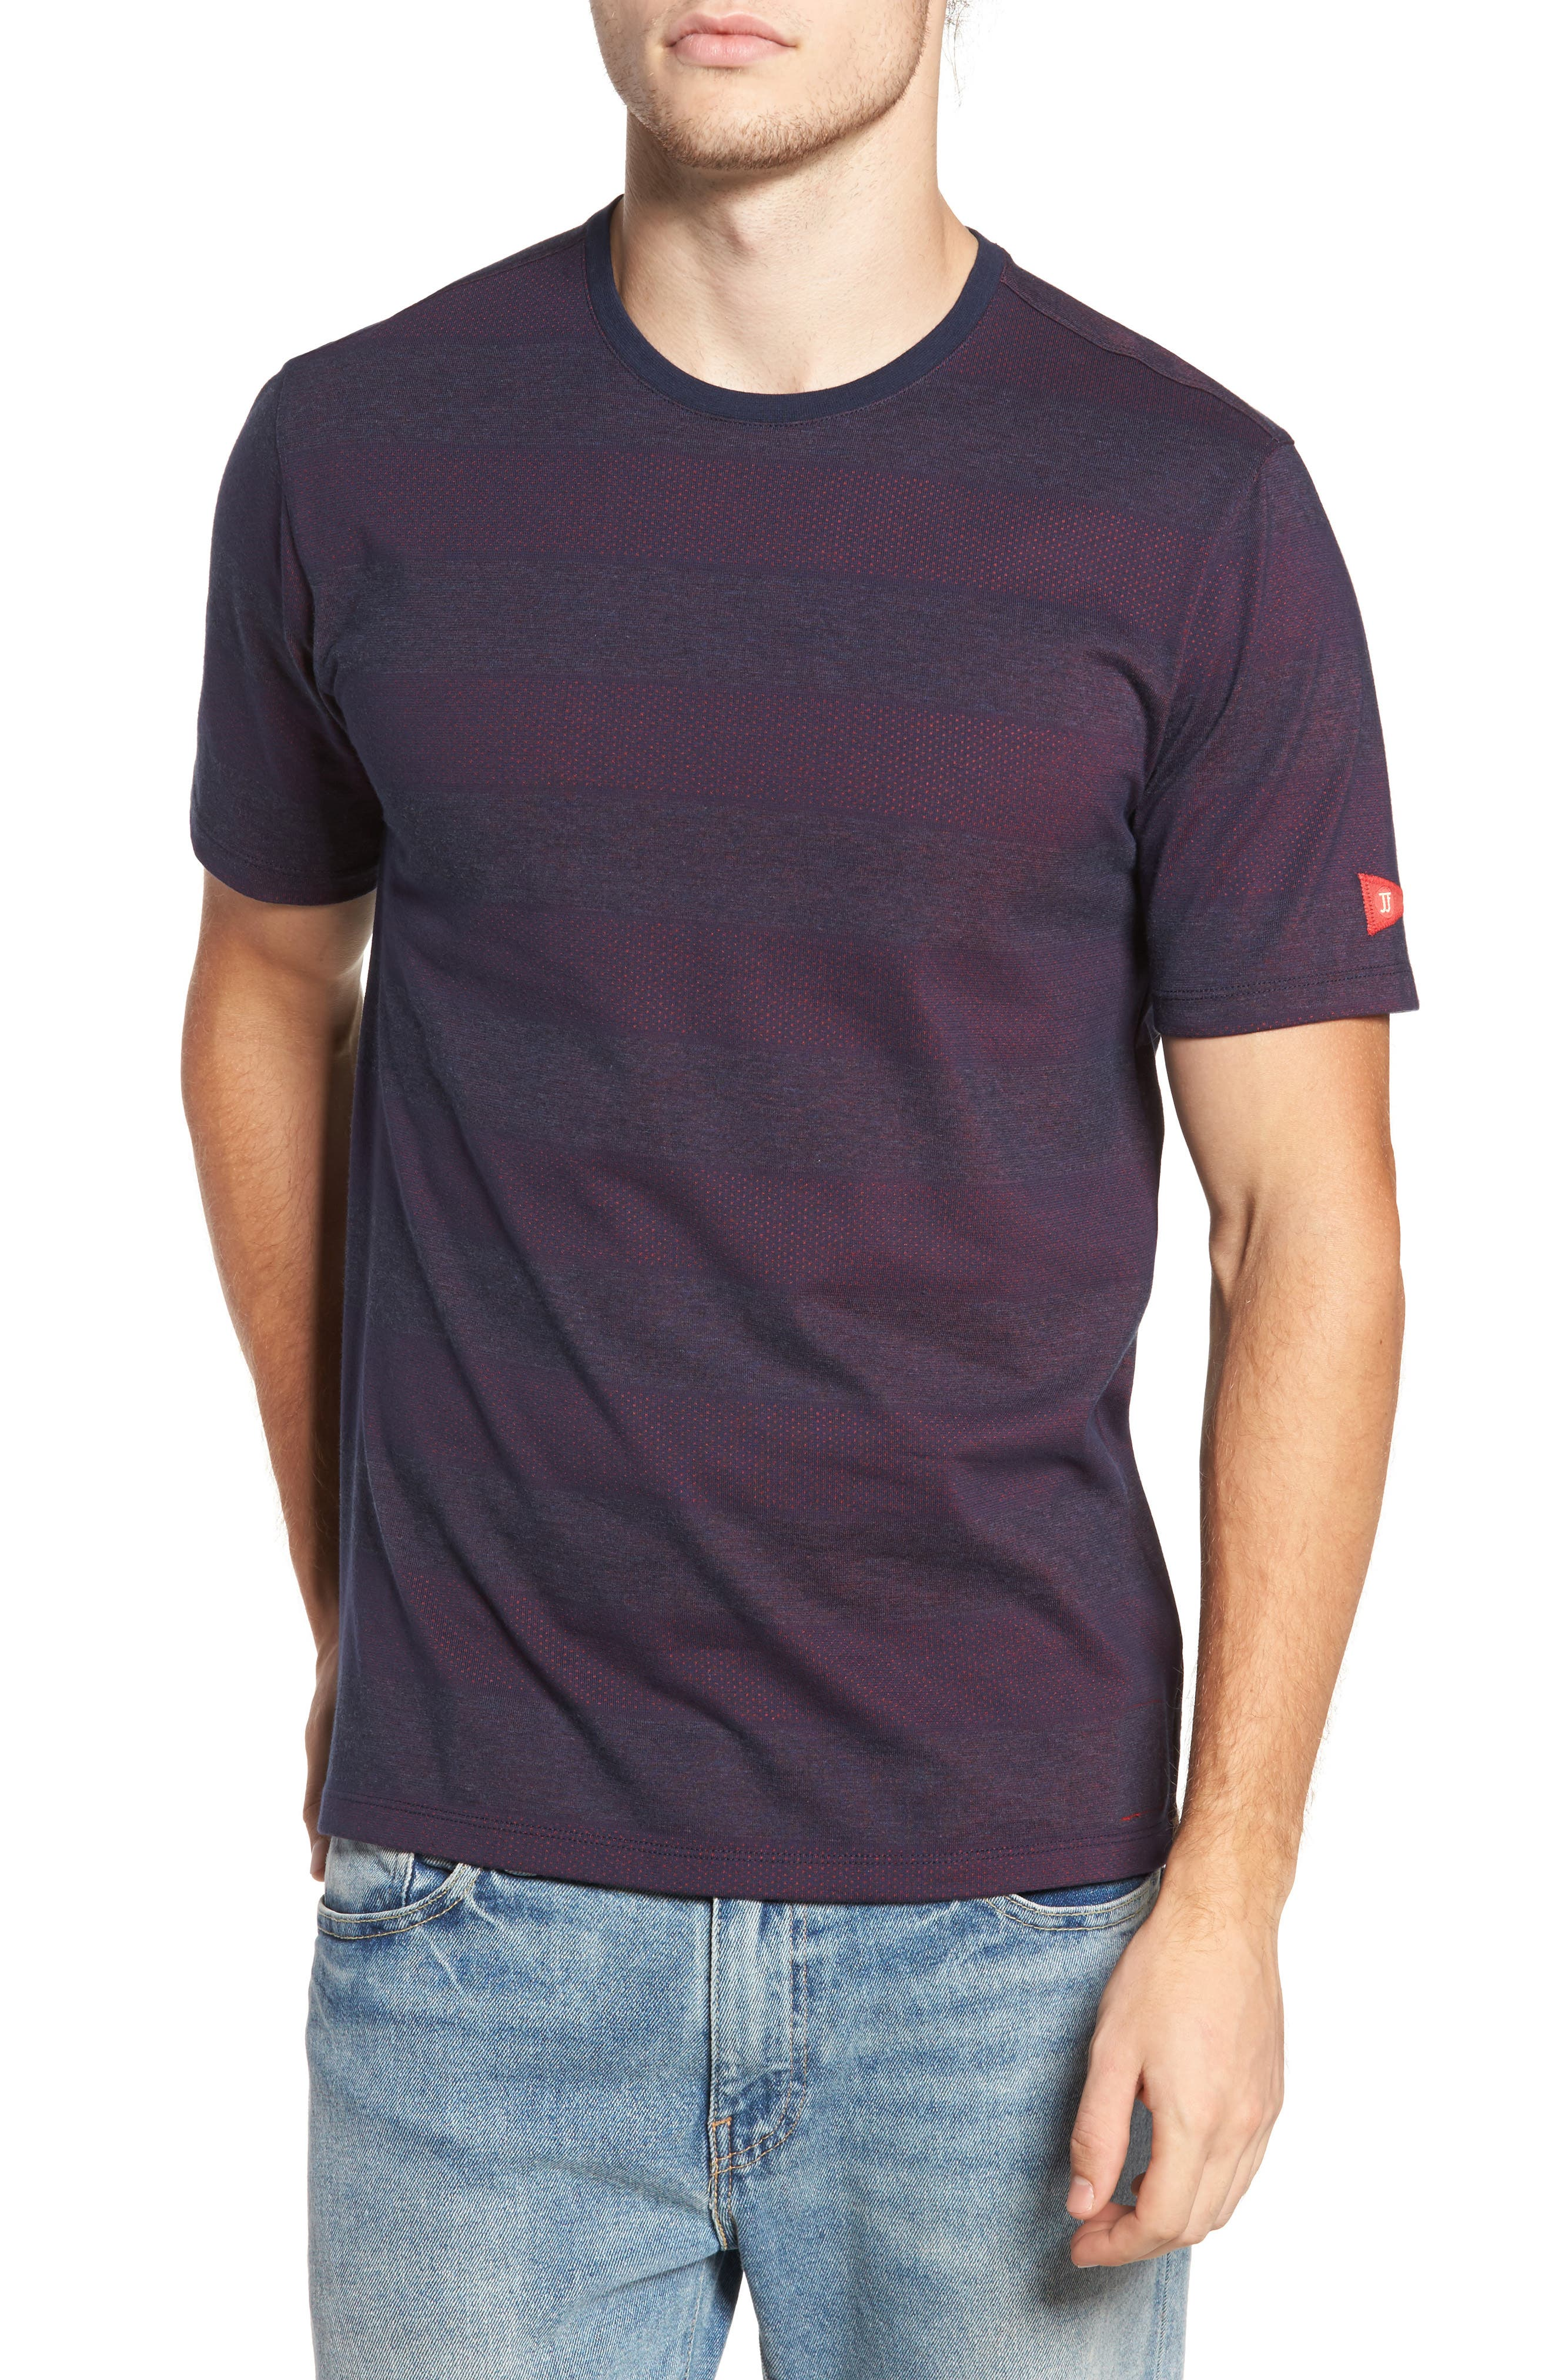 Regatta Dri-FIT T-Shirt,                             Main thumbnail 2, color,